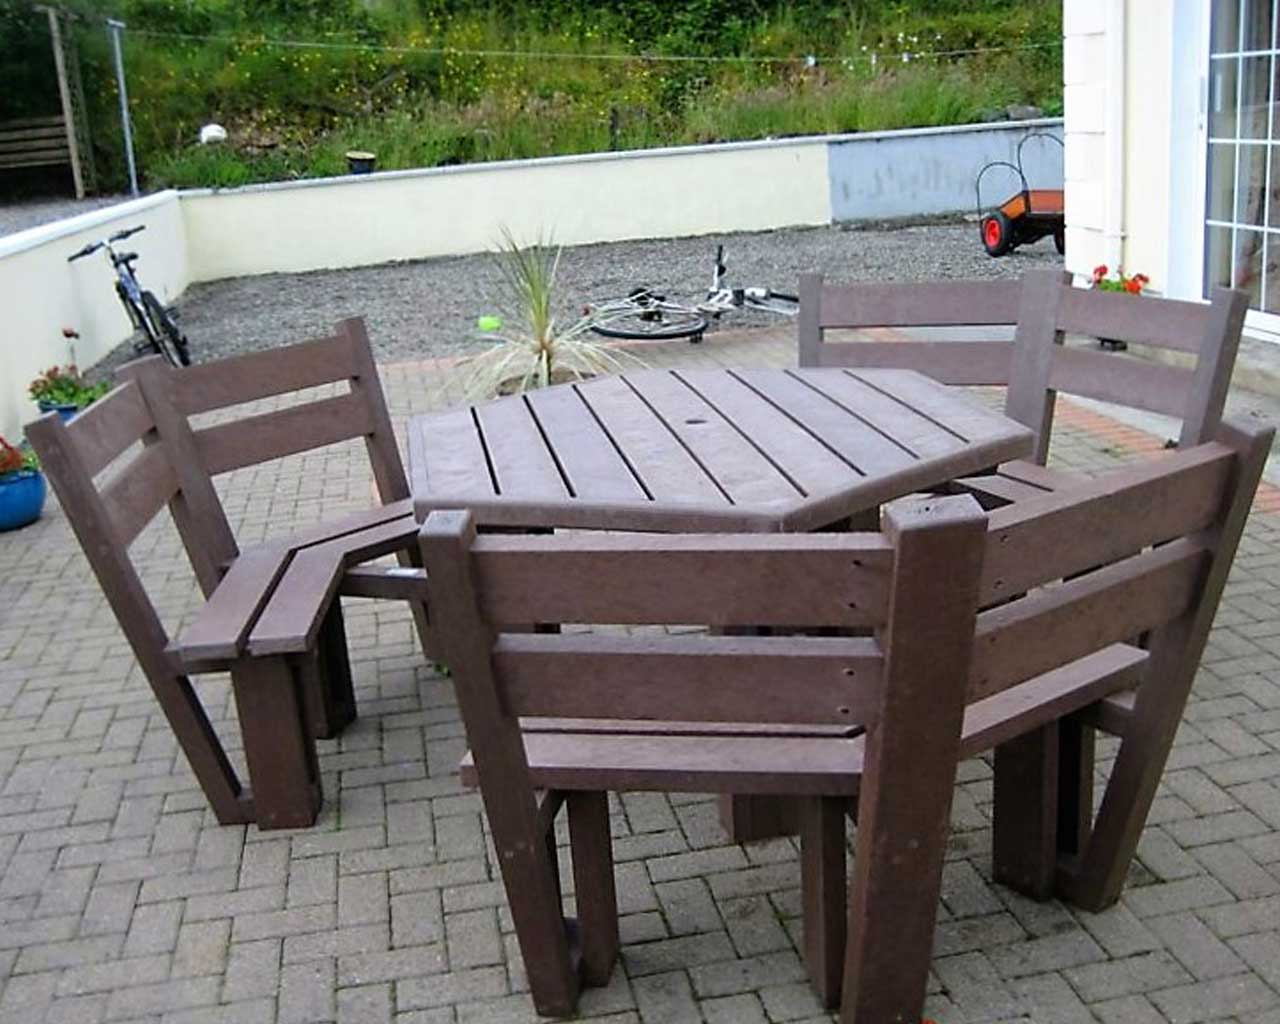 6 sided picnic table with back